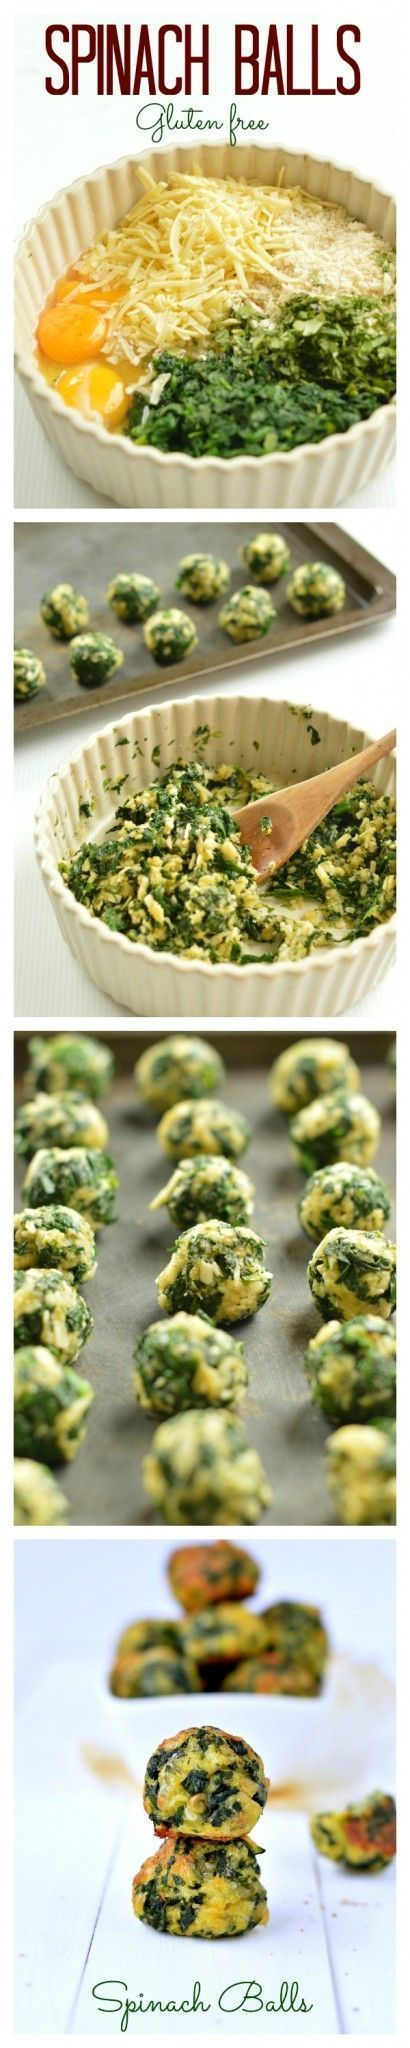 My fav Healthy Party Appetizers! Those Spinach balls are made with only 5 ingredients and take few minutes to prepare.